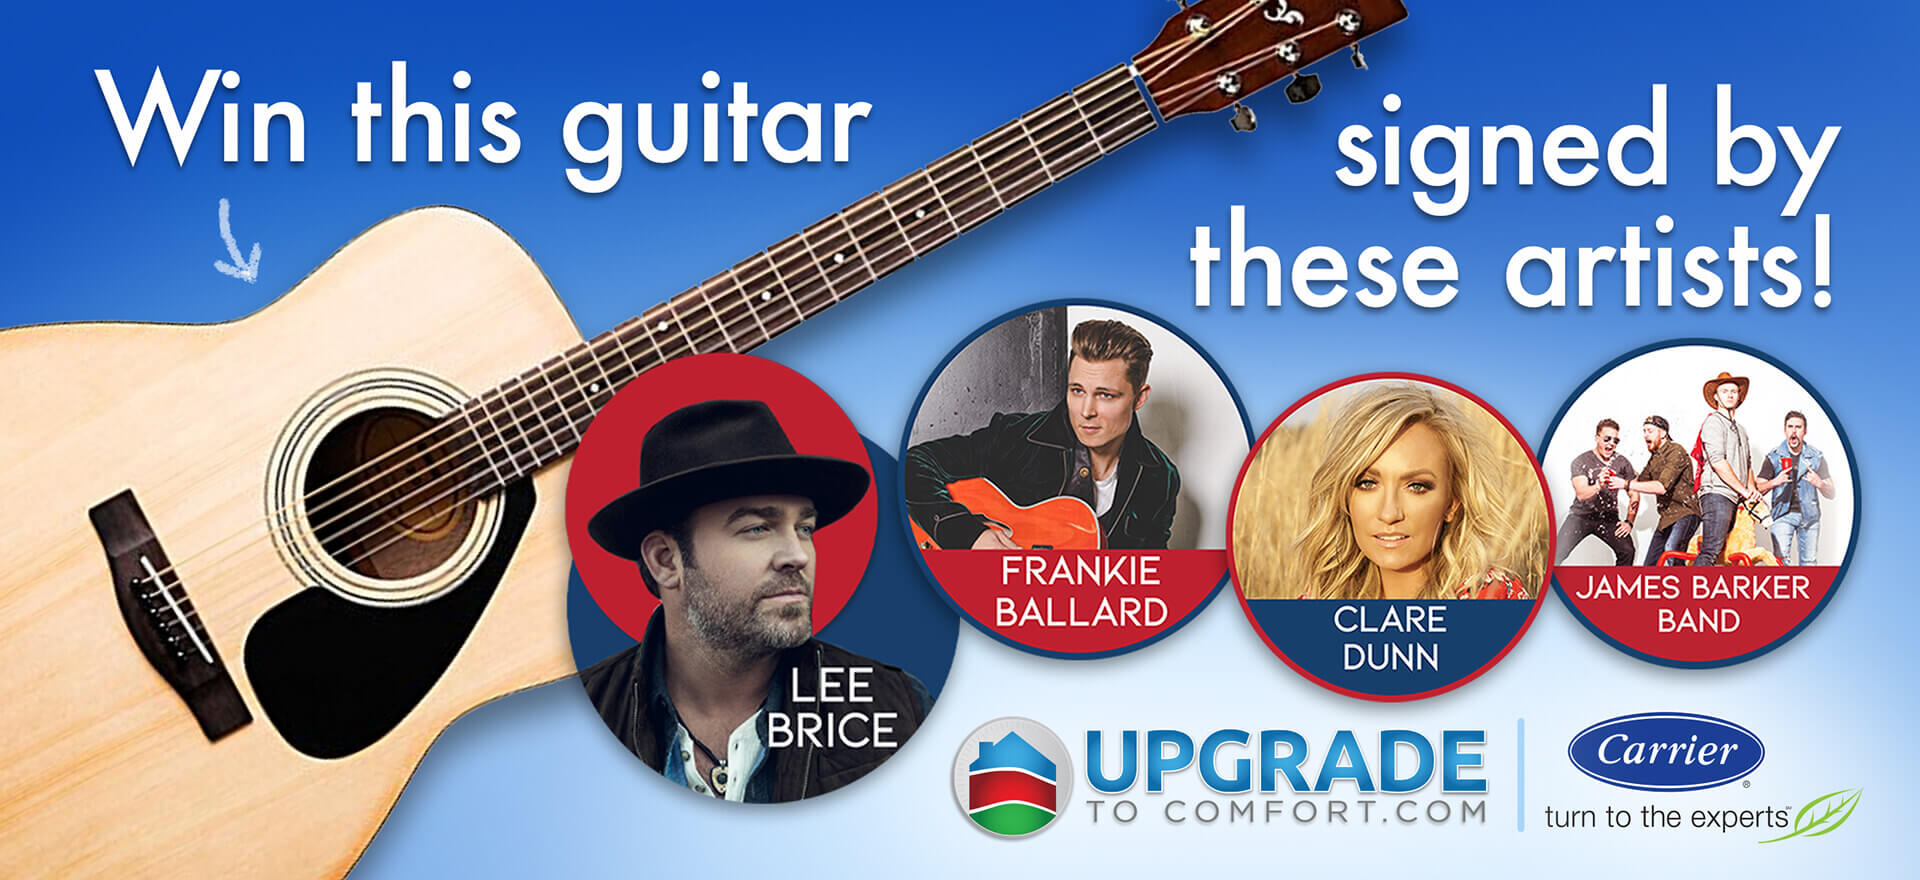 Win this guitar signed by Lee Brice, Frankie Ballard, Clare Dunn, and James Barker Band